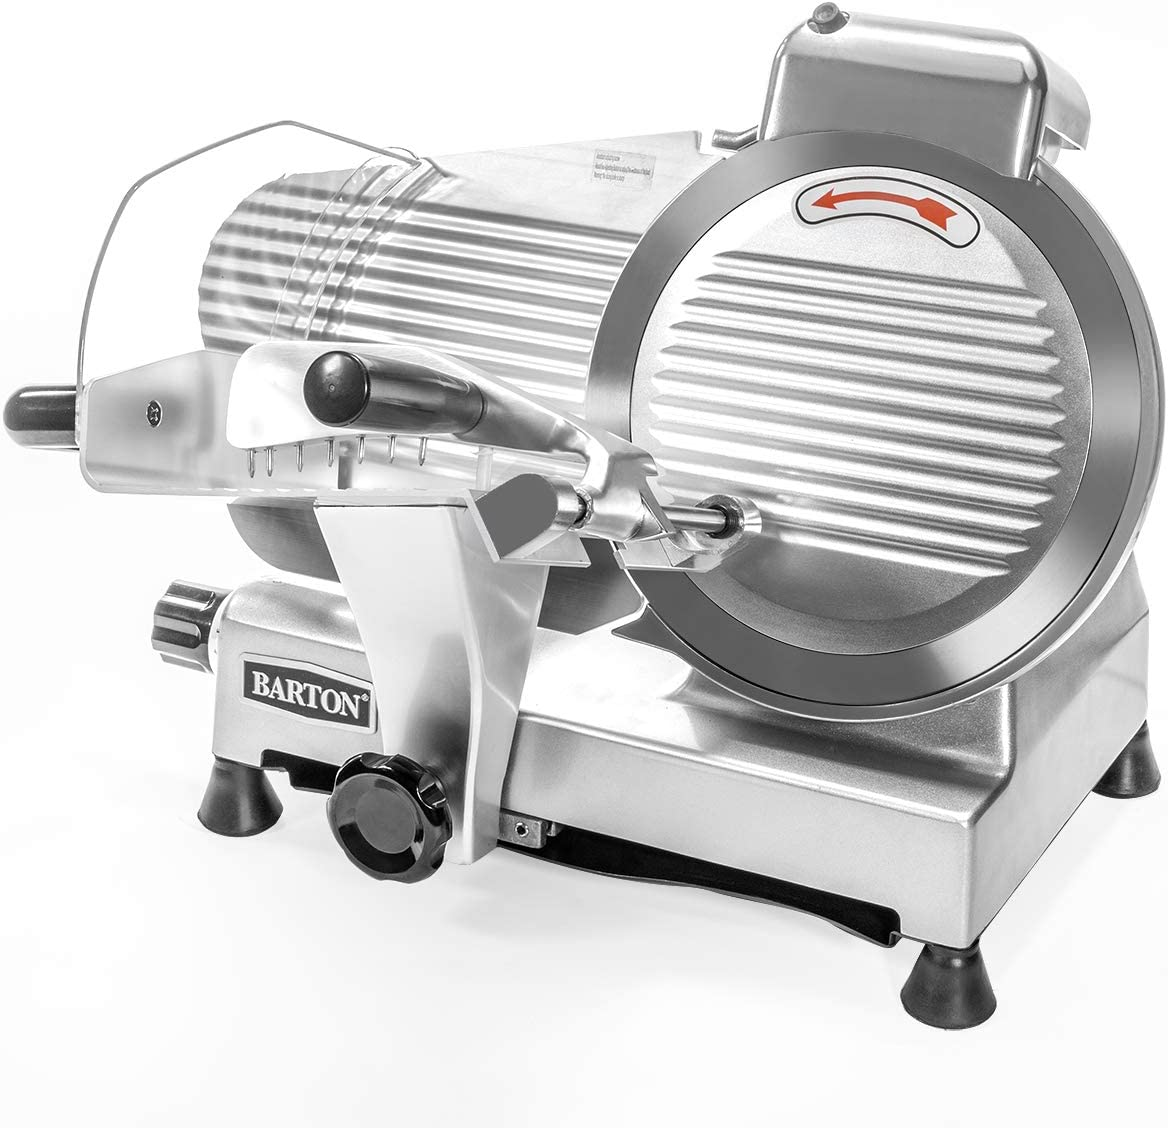 """Barton Commercial Stainless Steel Semi-Auto Meat Slicer Cheese Food Electric Deli Slicer Veggies Cutter 10"""" inch Blade"""